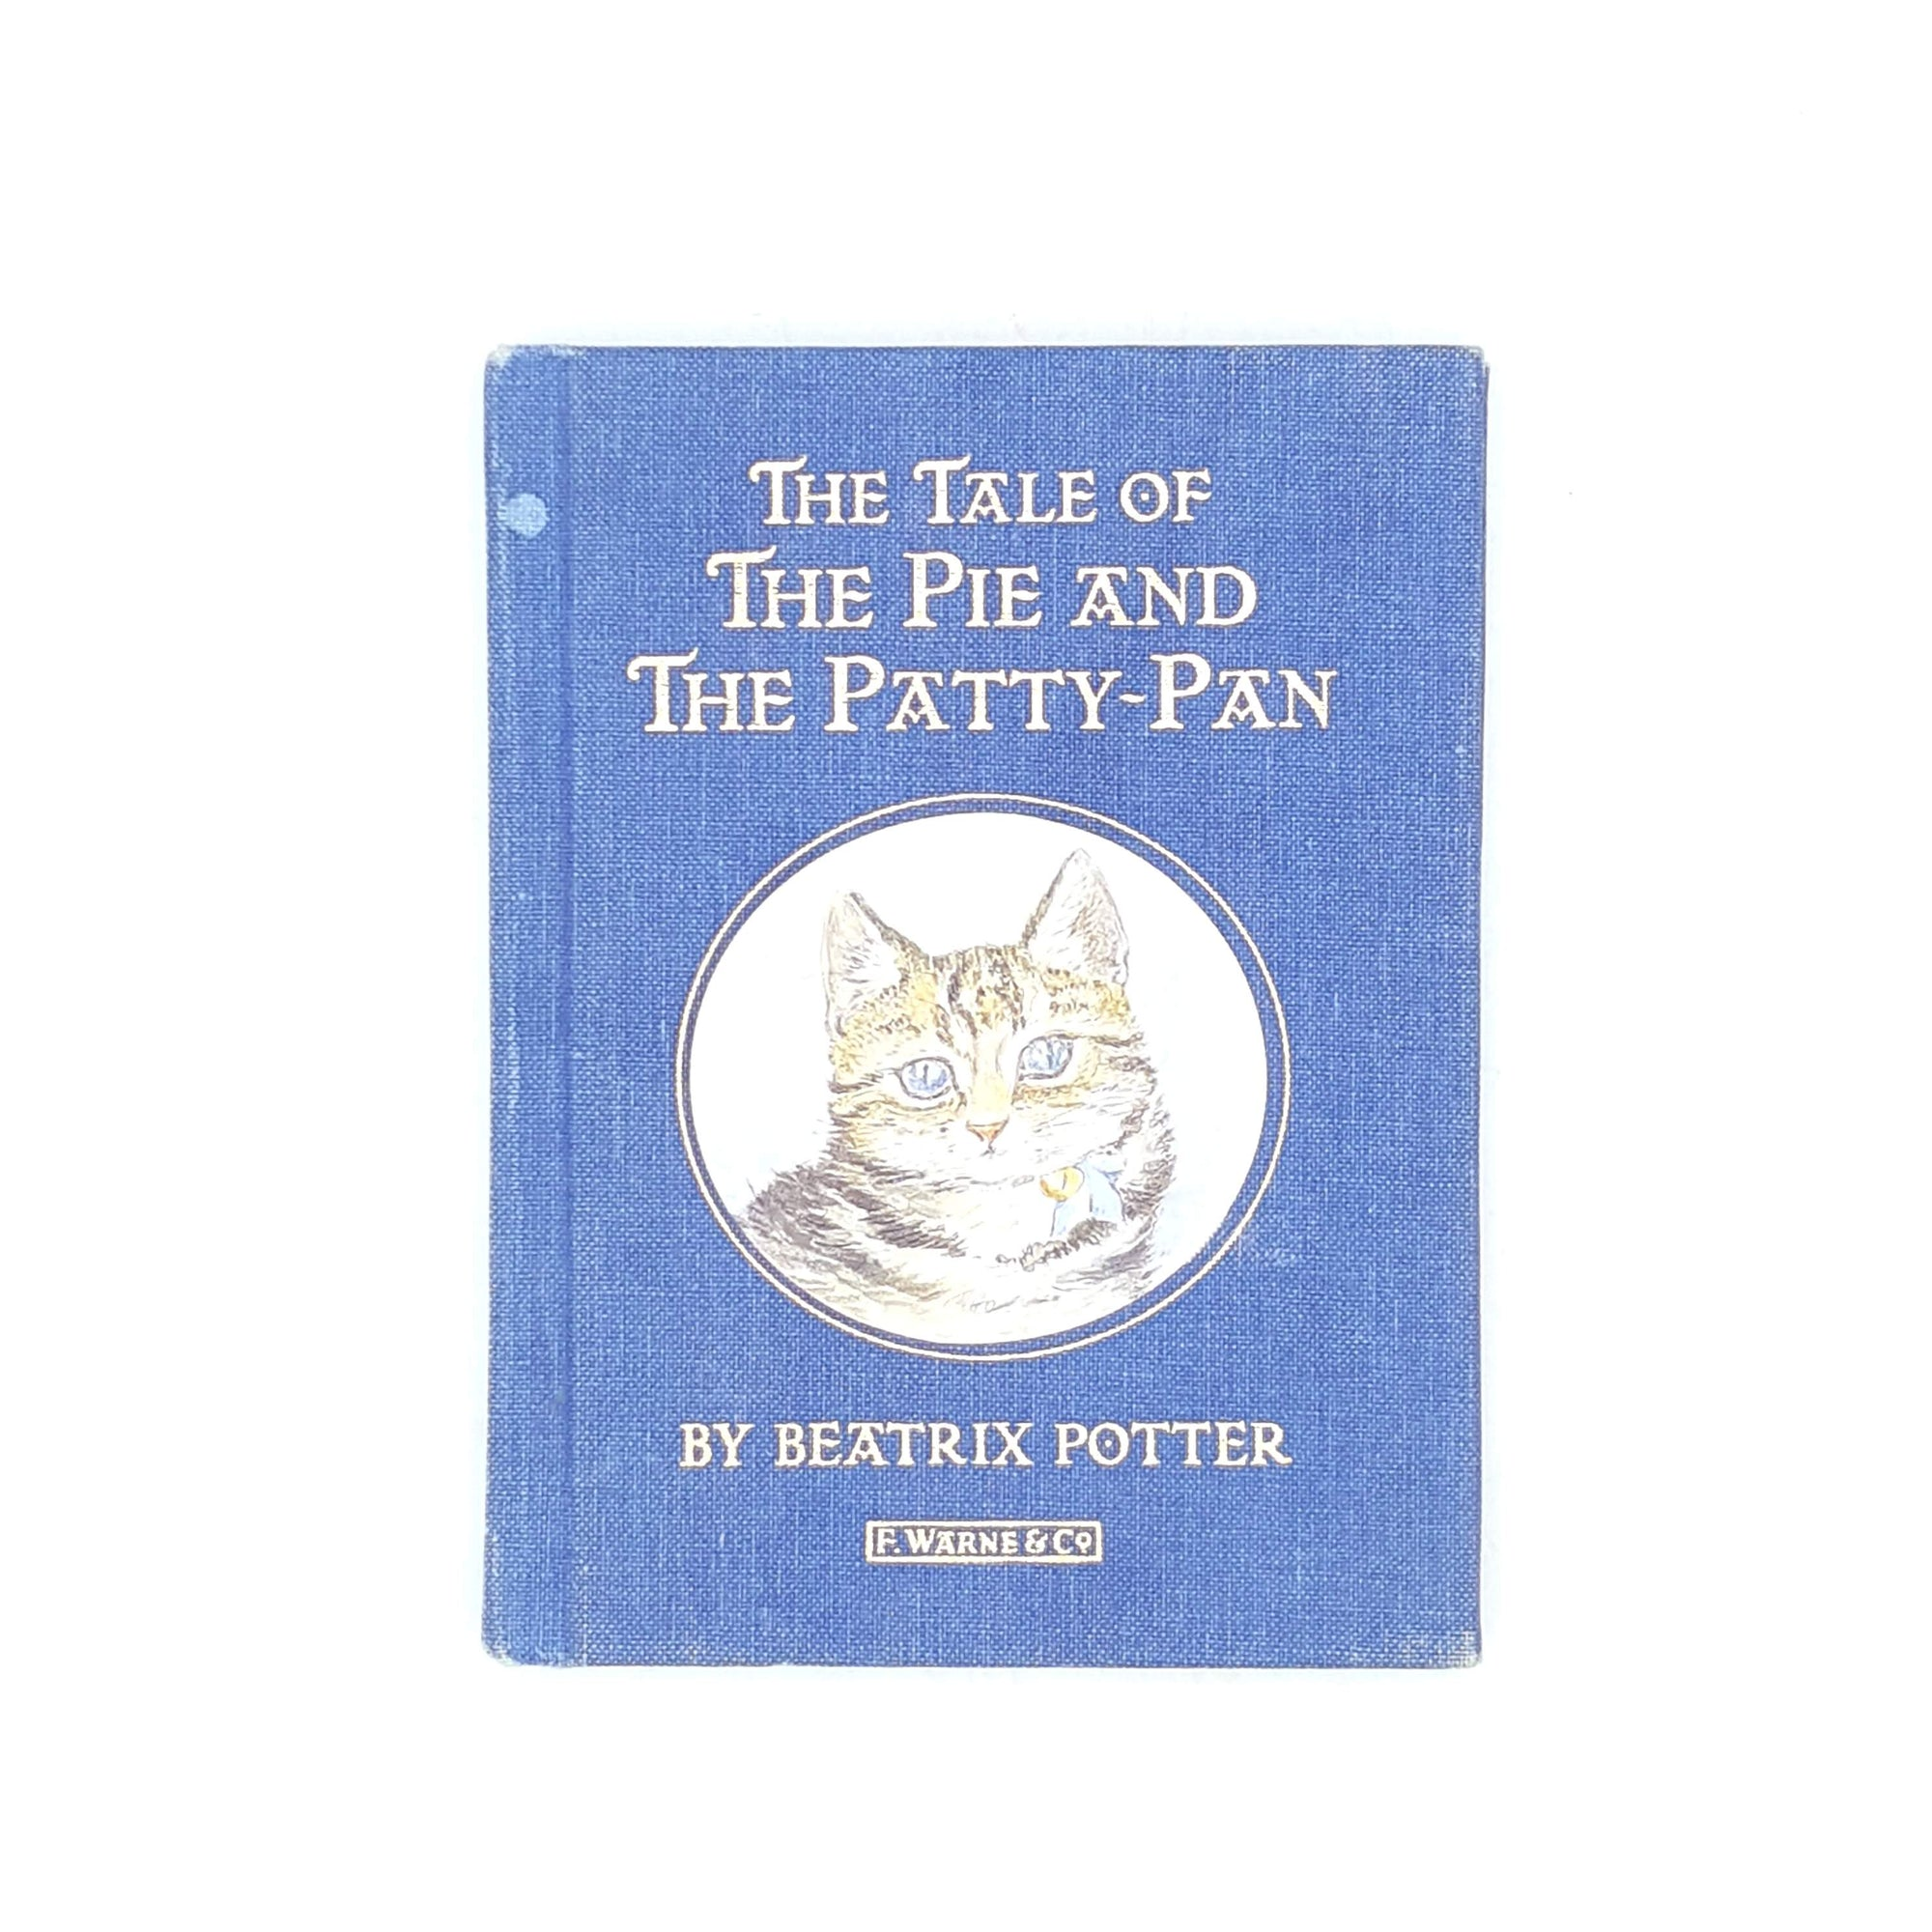 Beatrix Potter's The Tale of the Pie and the Patty-Pan Cloth Cover Edition